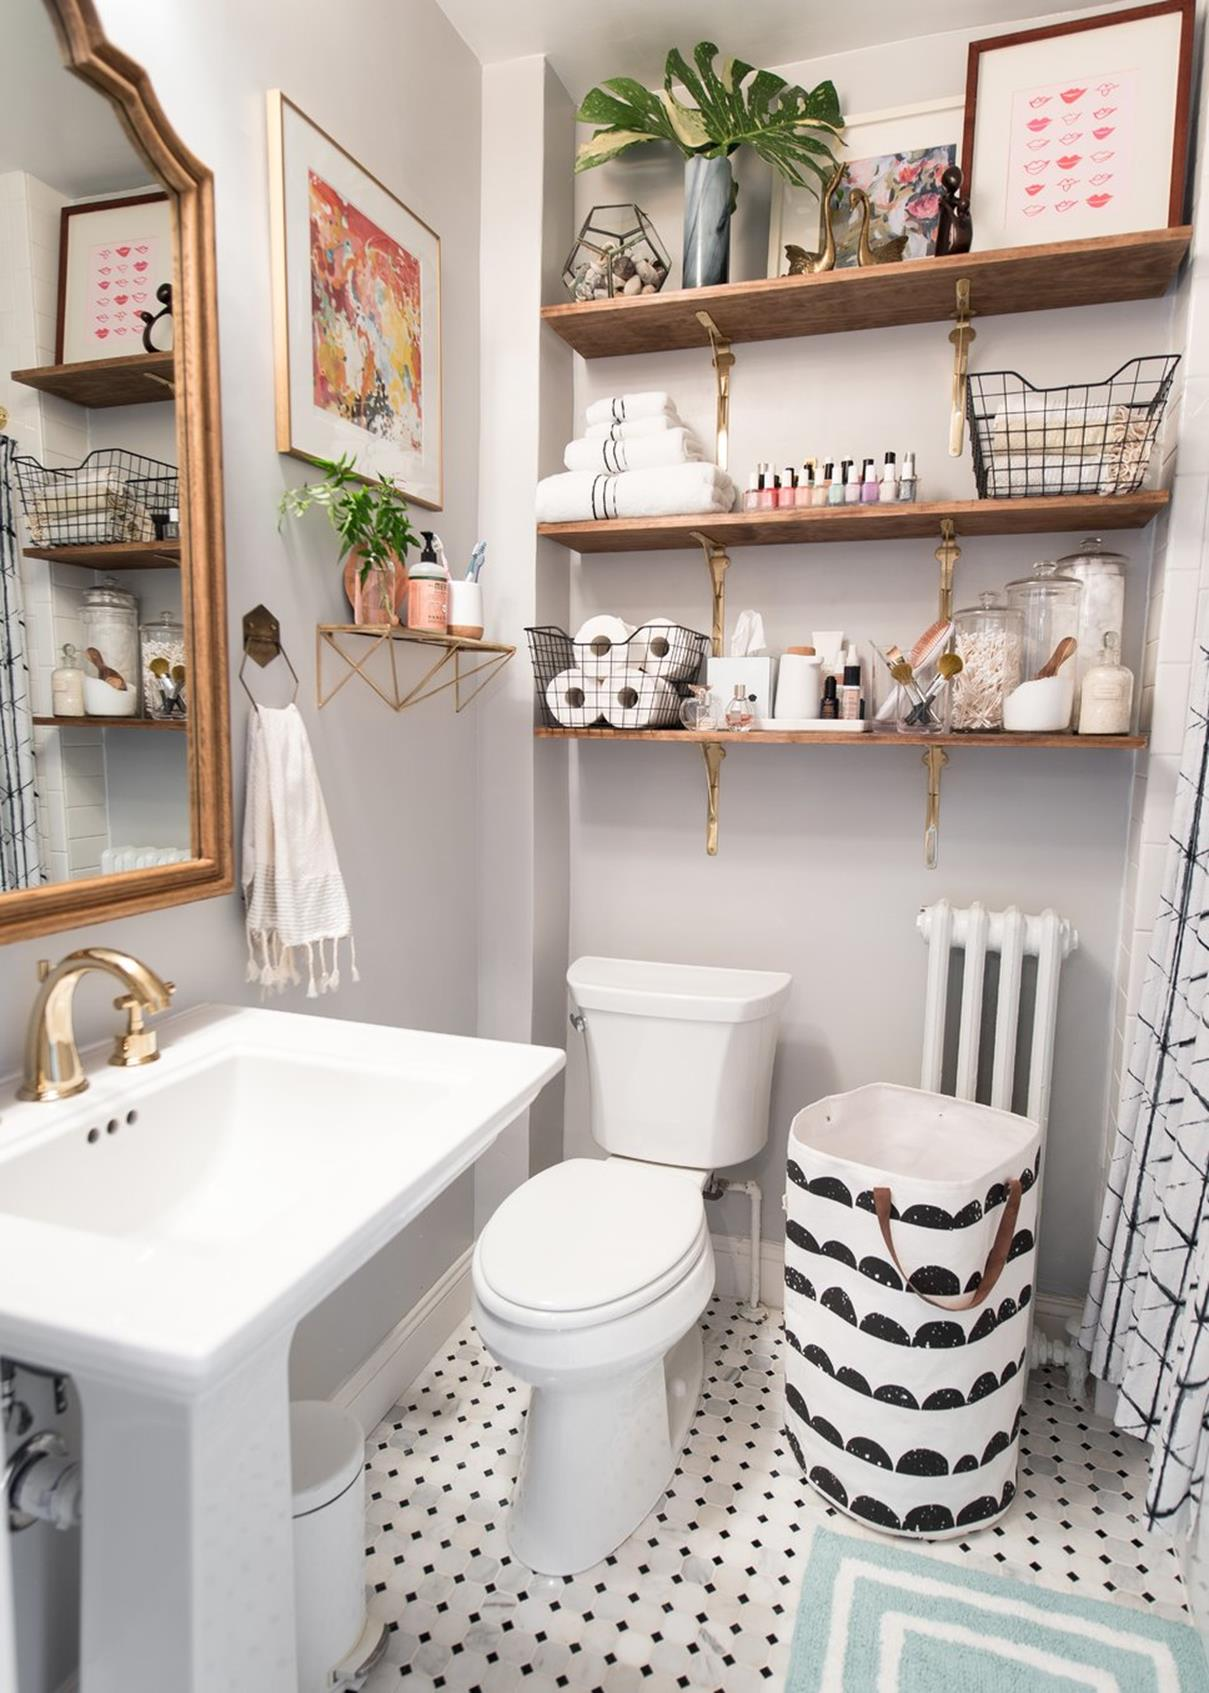 42 Perfect Small Bathroom Decorating Ideas 15